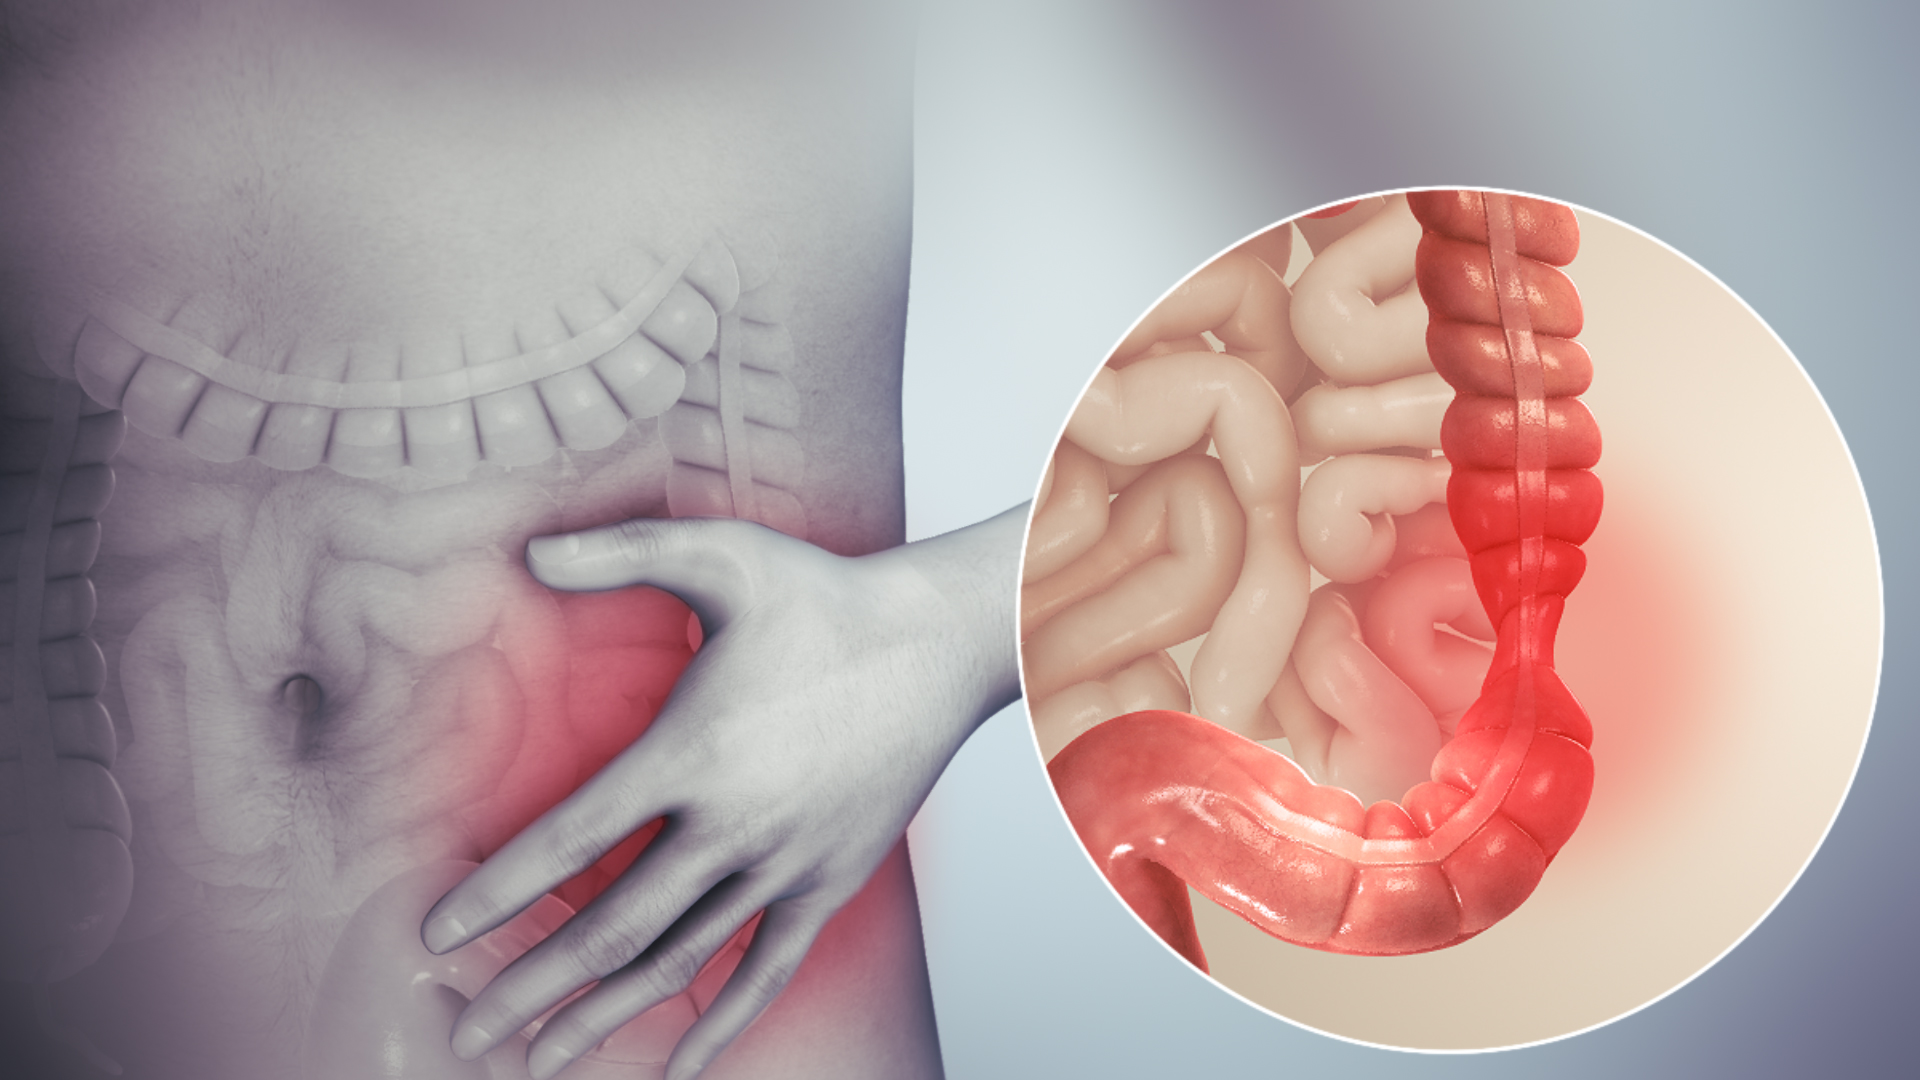 Gastrointestinal bowel syndrome